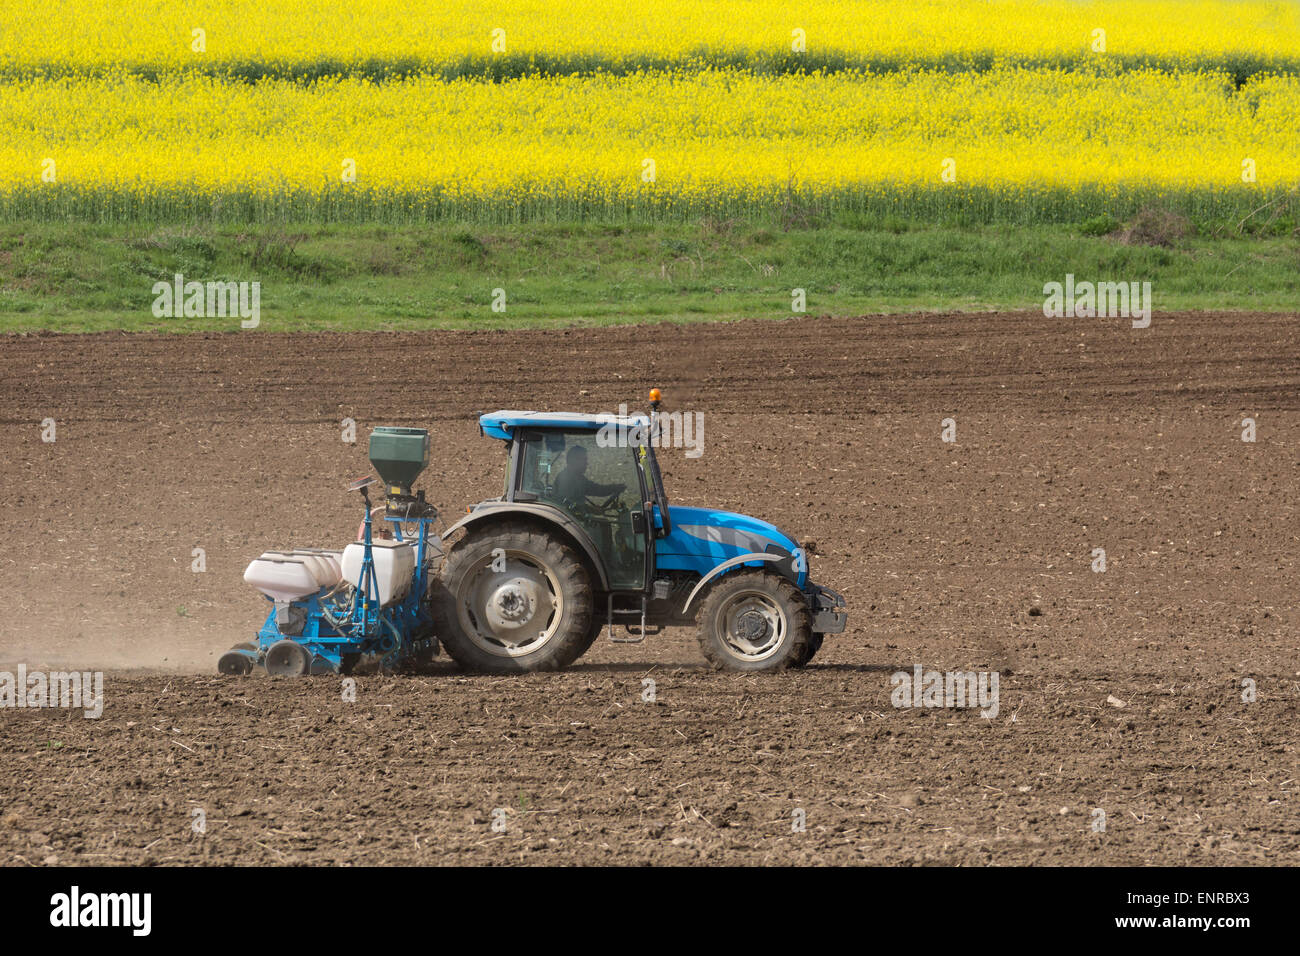 Farming a field with a tractor - Stock Image